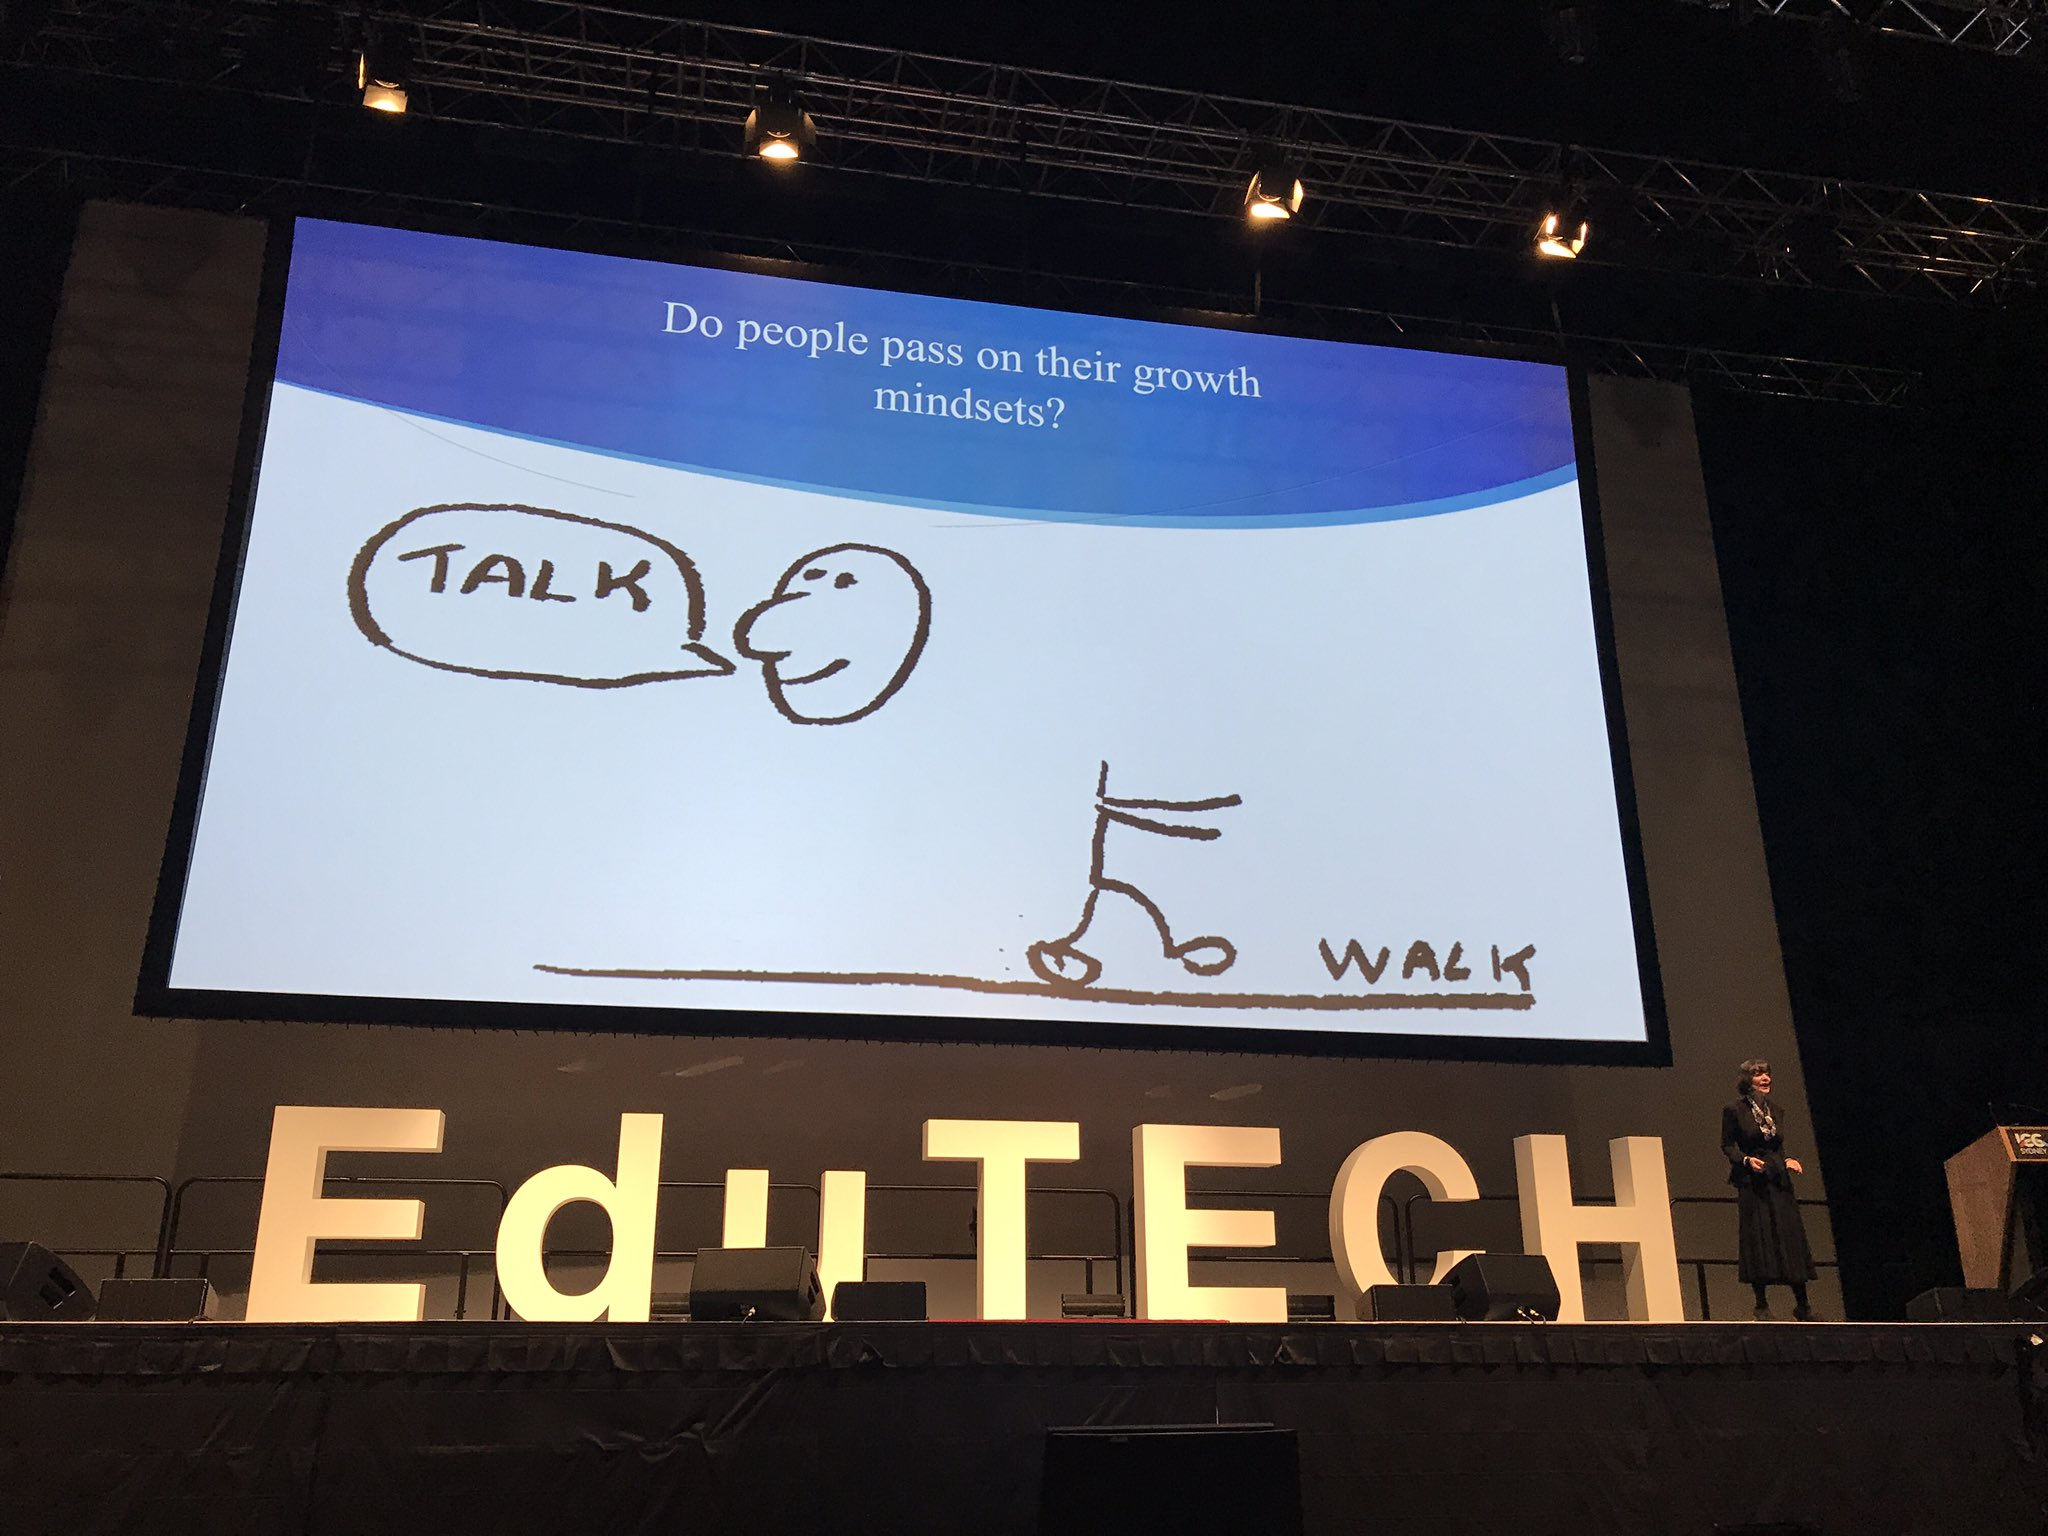 You have to 'walk' the growth mindset to transmit it to others. Role model the behaviour! #EDUtechAU https://t.co/SCKSCkiy9l